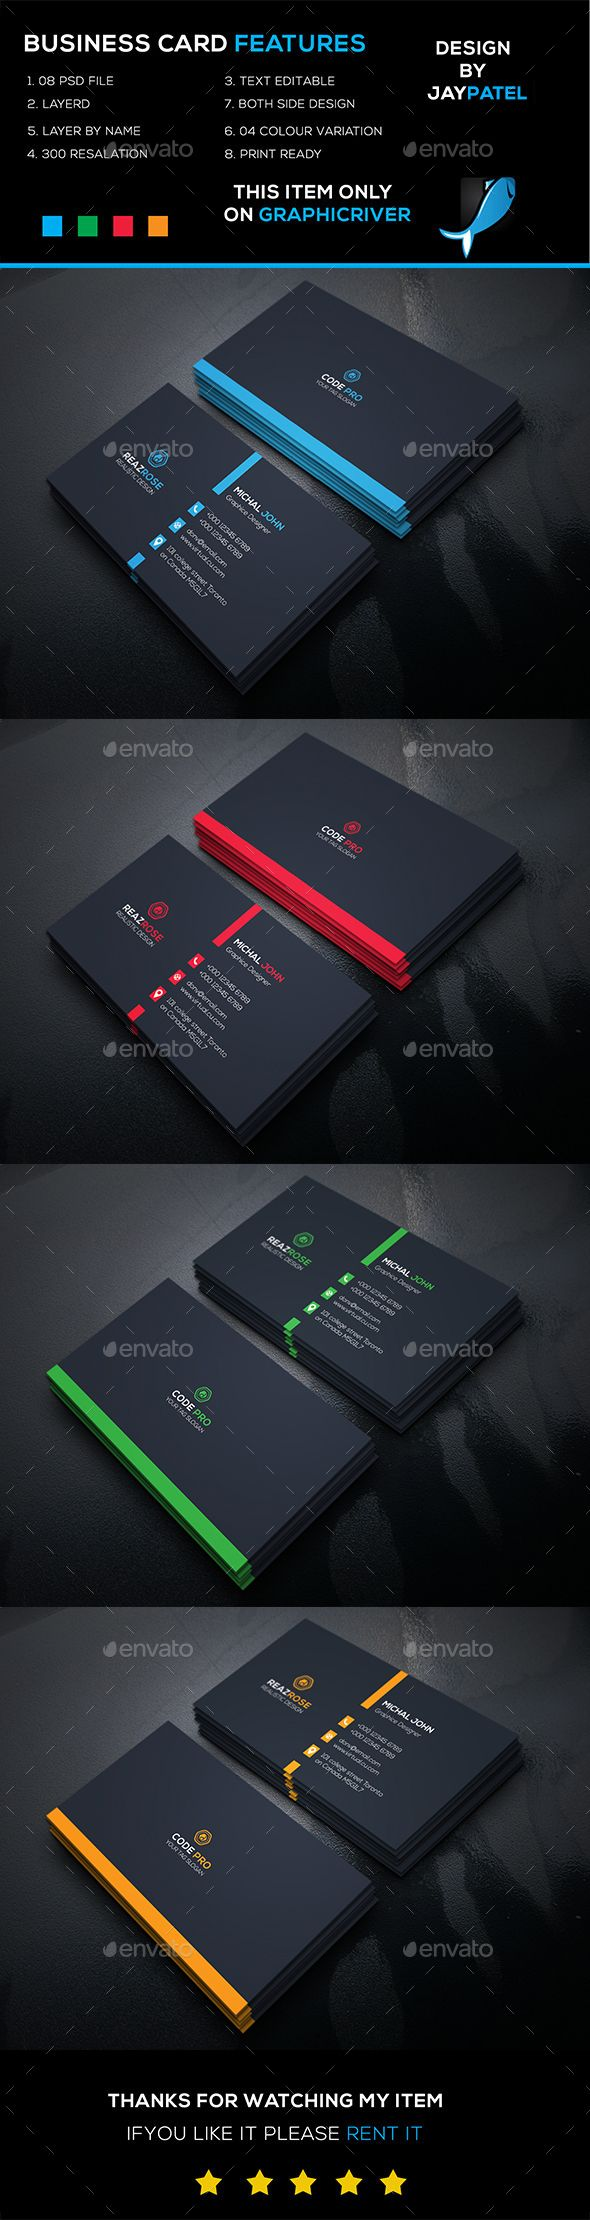 Corporate Business Card Template Psd Graphic Design Business Card Business Card Design Business Cards Layout